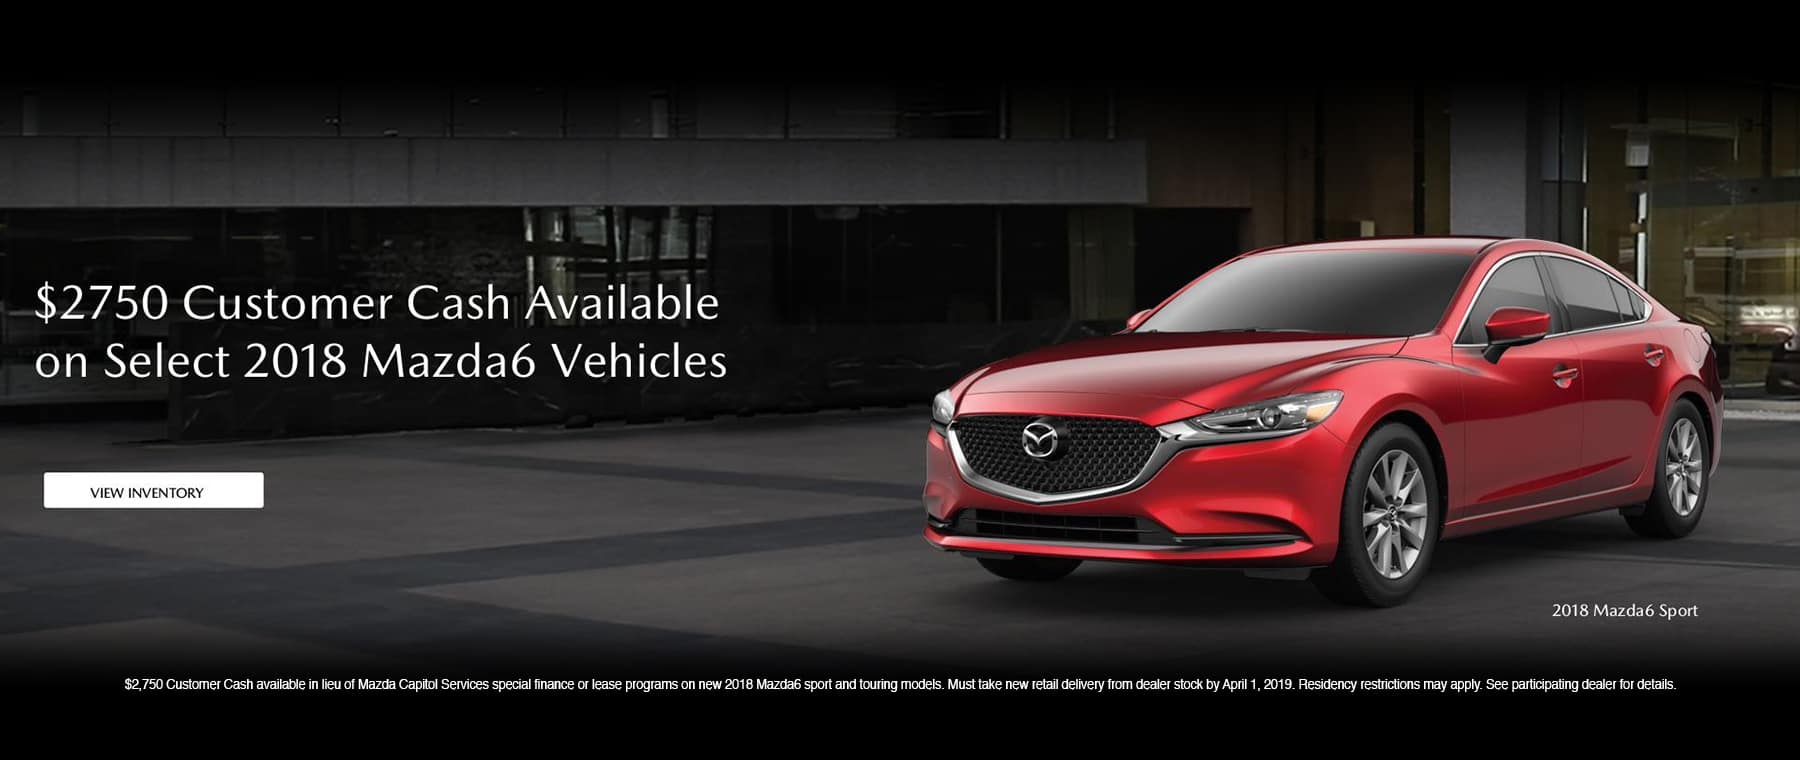 Customer-Cash-Available-On-Select-2018-Mazda-6-Vehicles